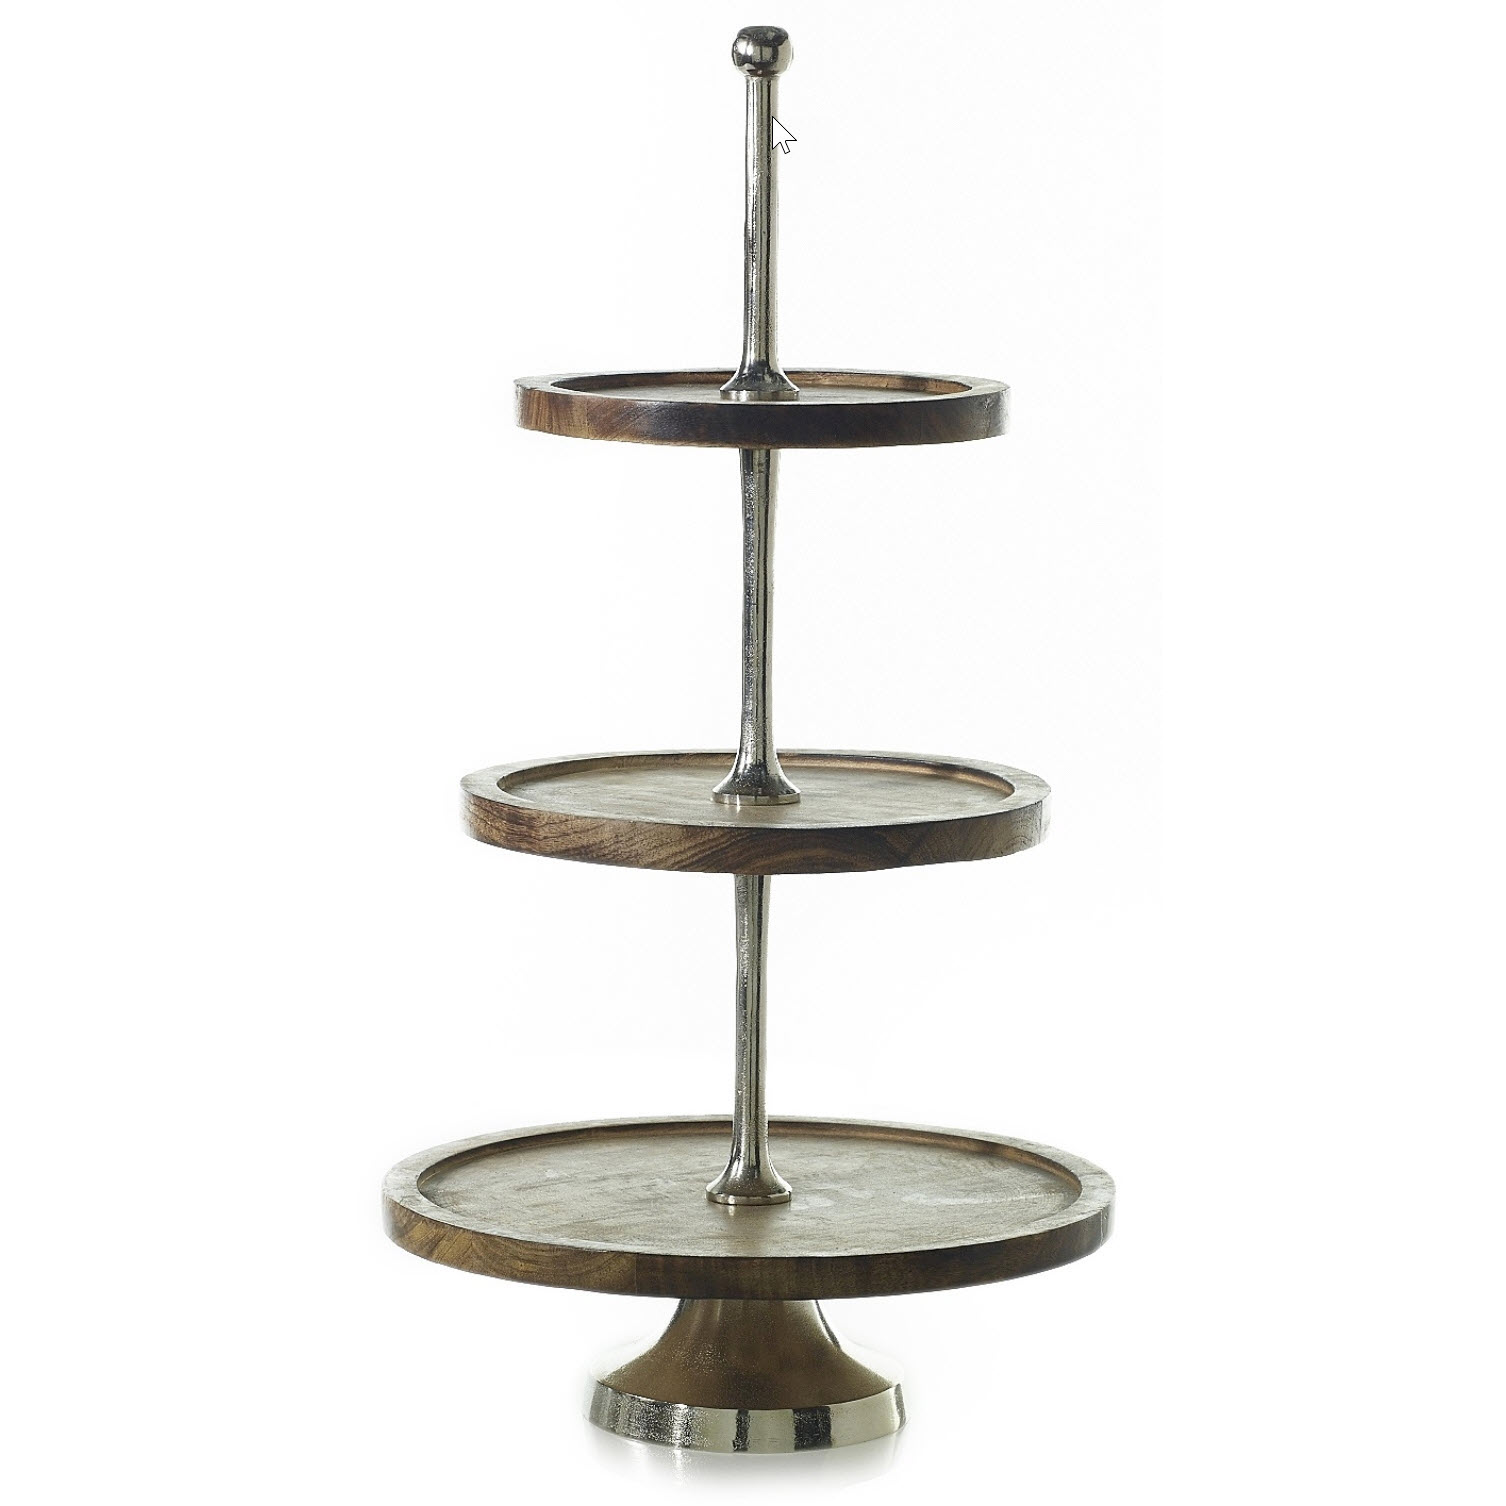 3 Tier Desert Stands